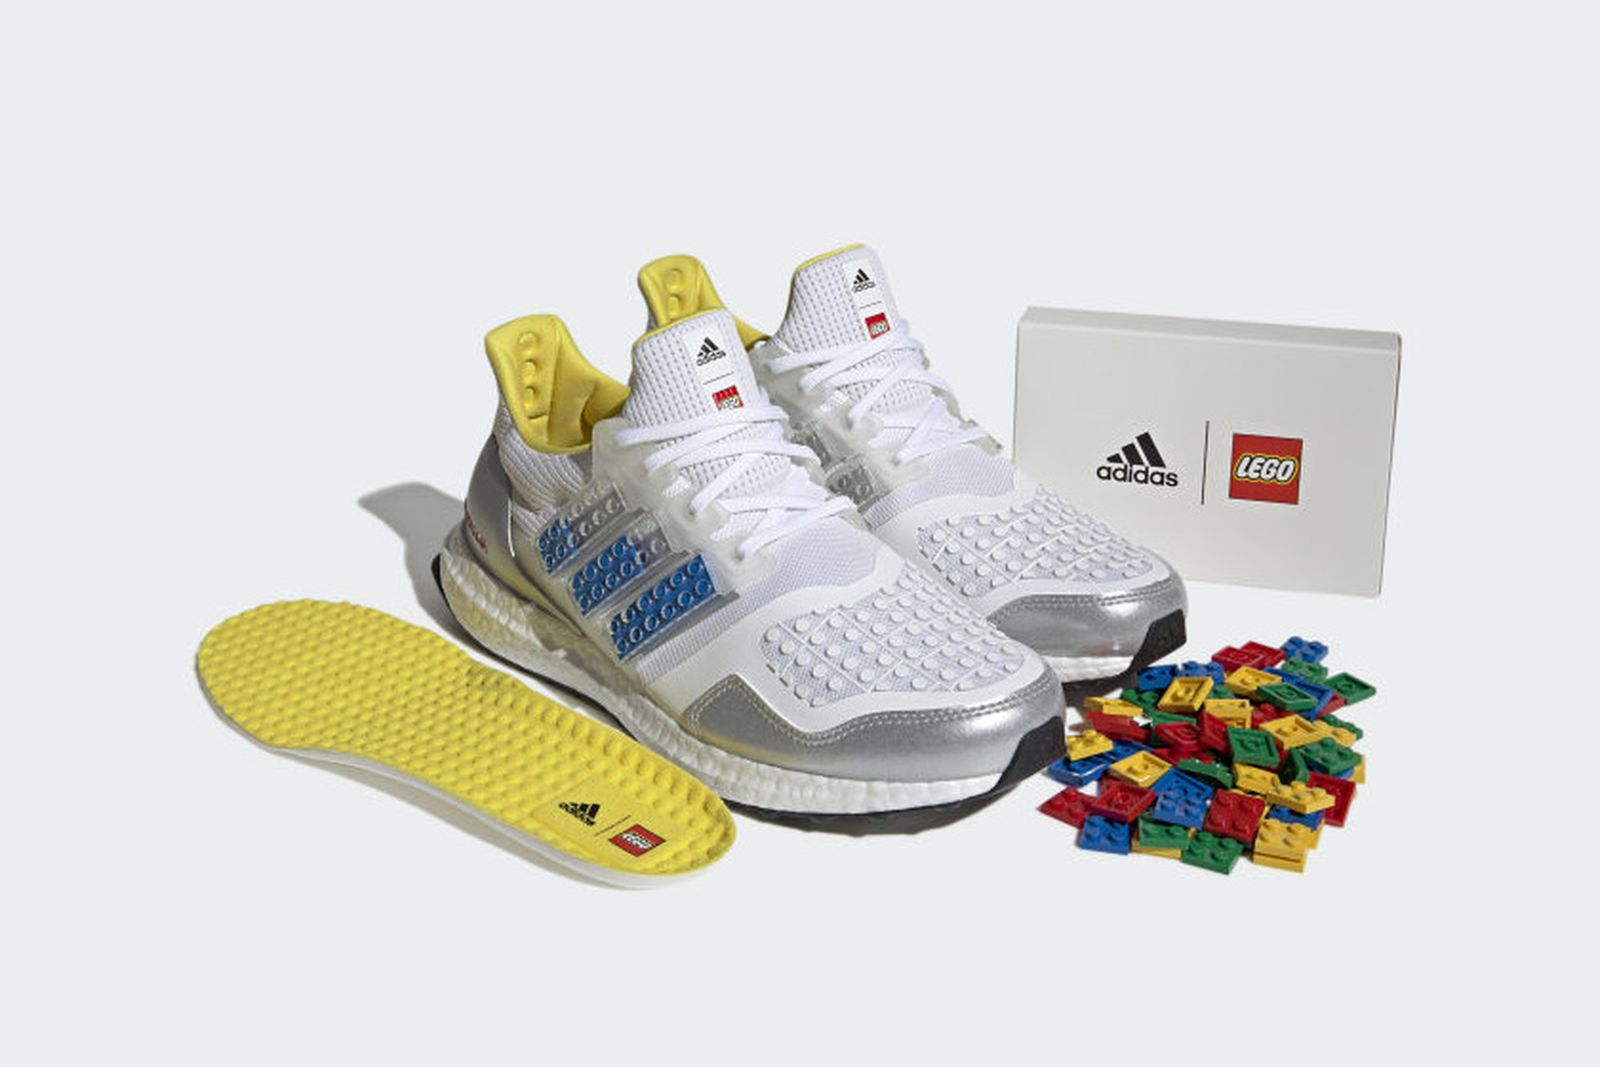 lego-adidas-ultraboost-dna-release-date-price-02